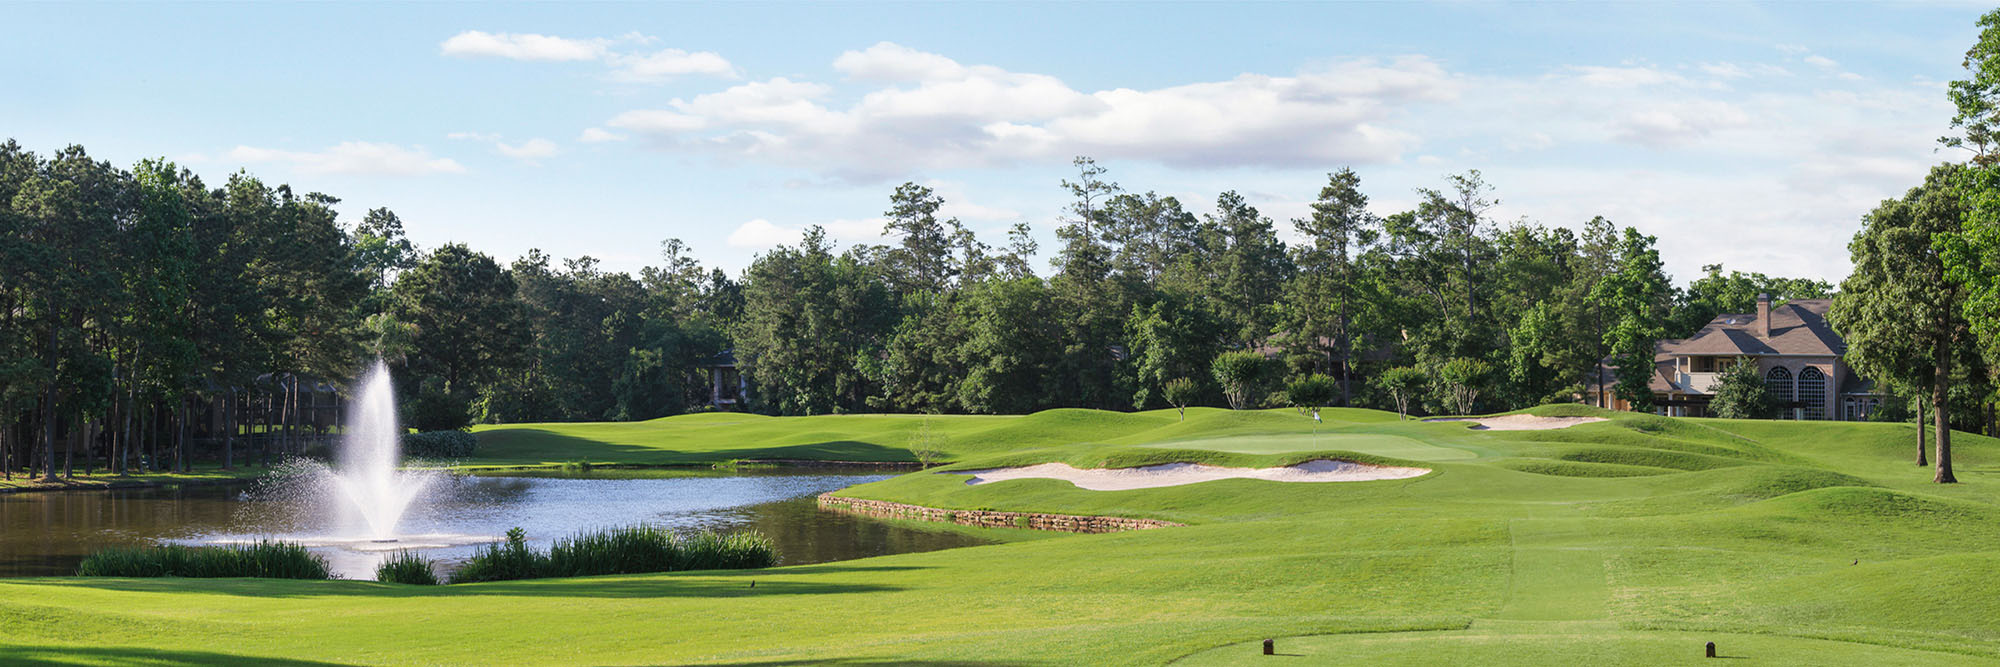 Golf Course Image - Woodlands-Palmer King Course No. 6